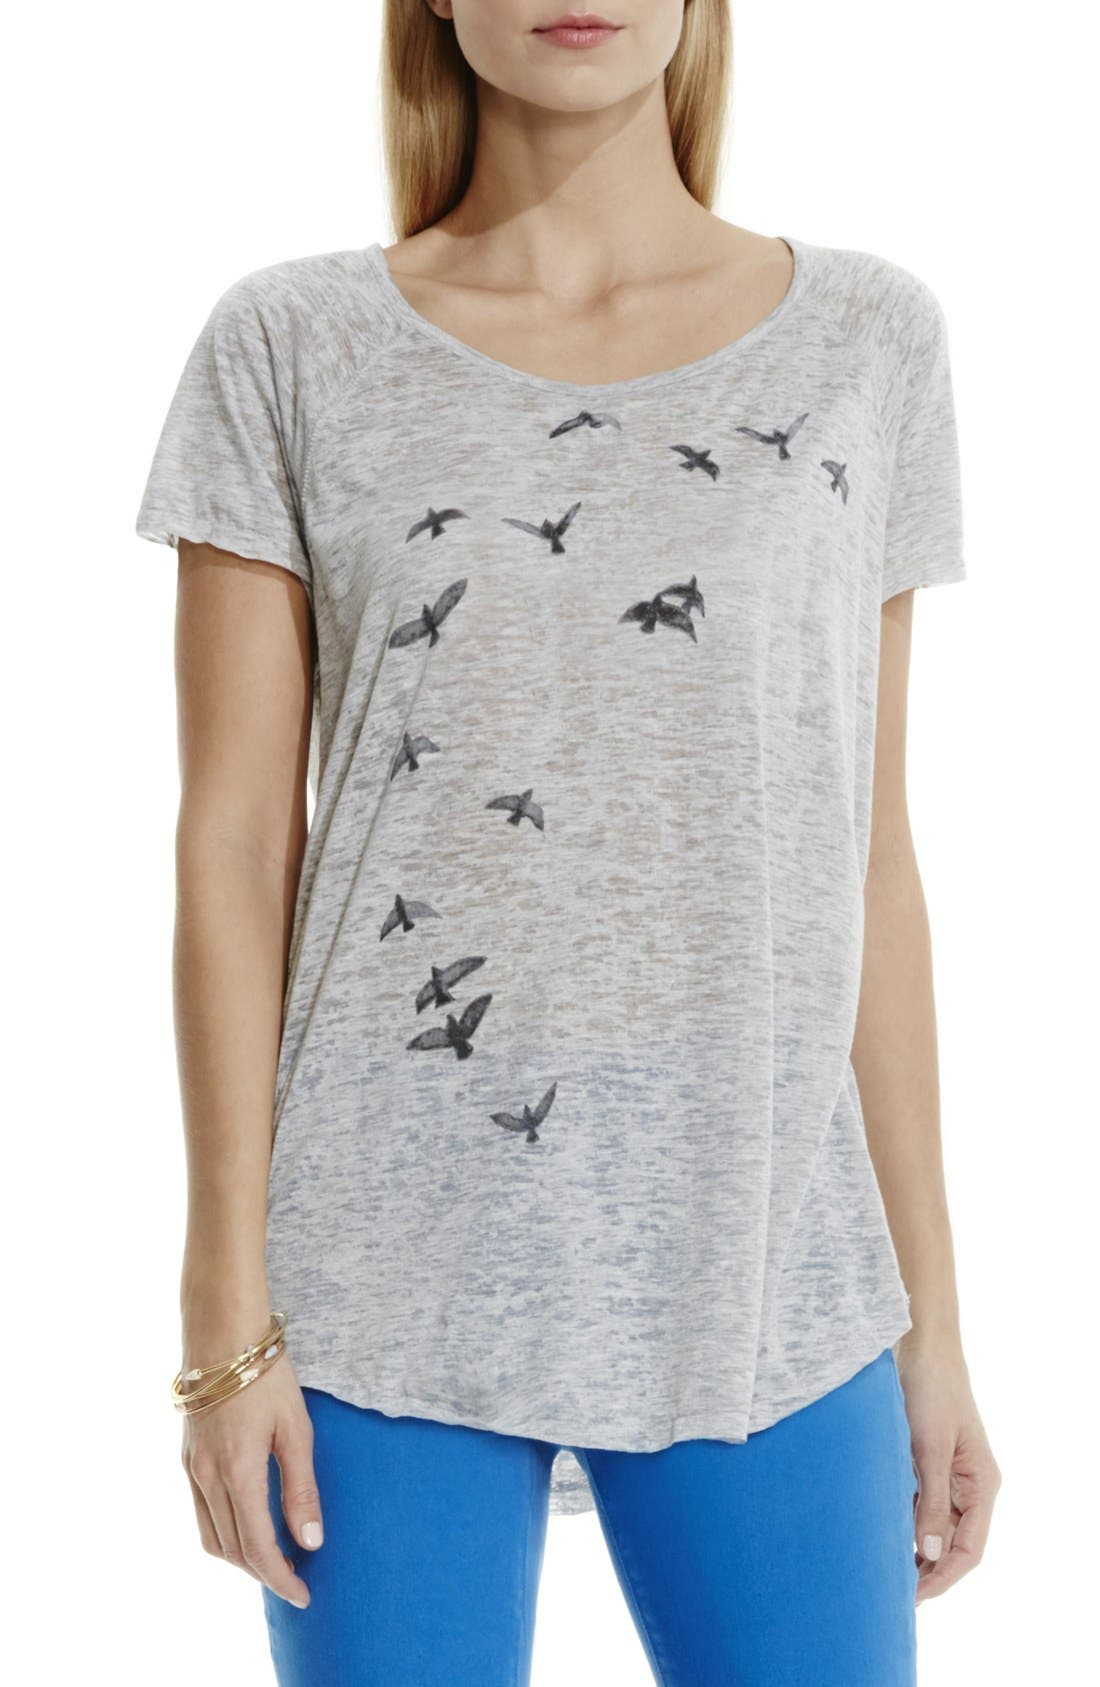 Main Image - Two by Vince Camuto 'In Flight' Burnout Tee